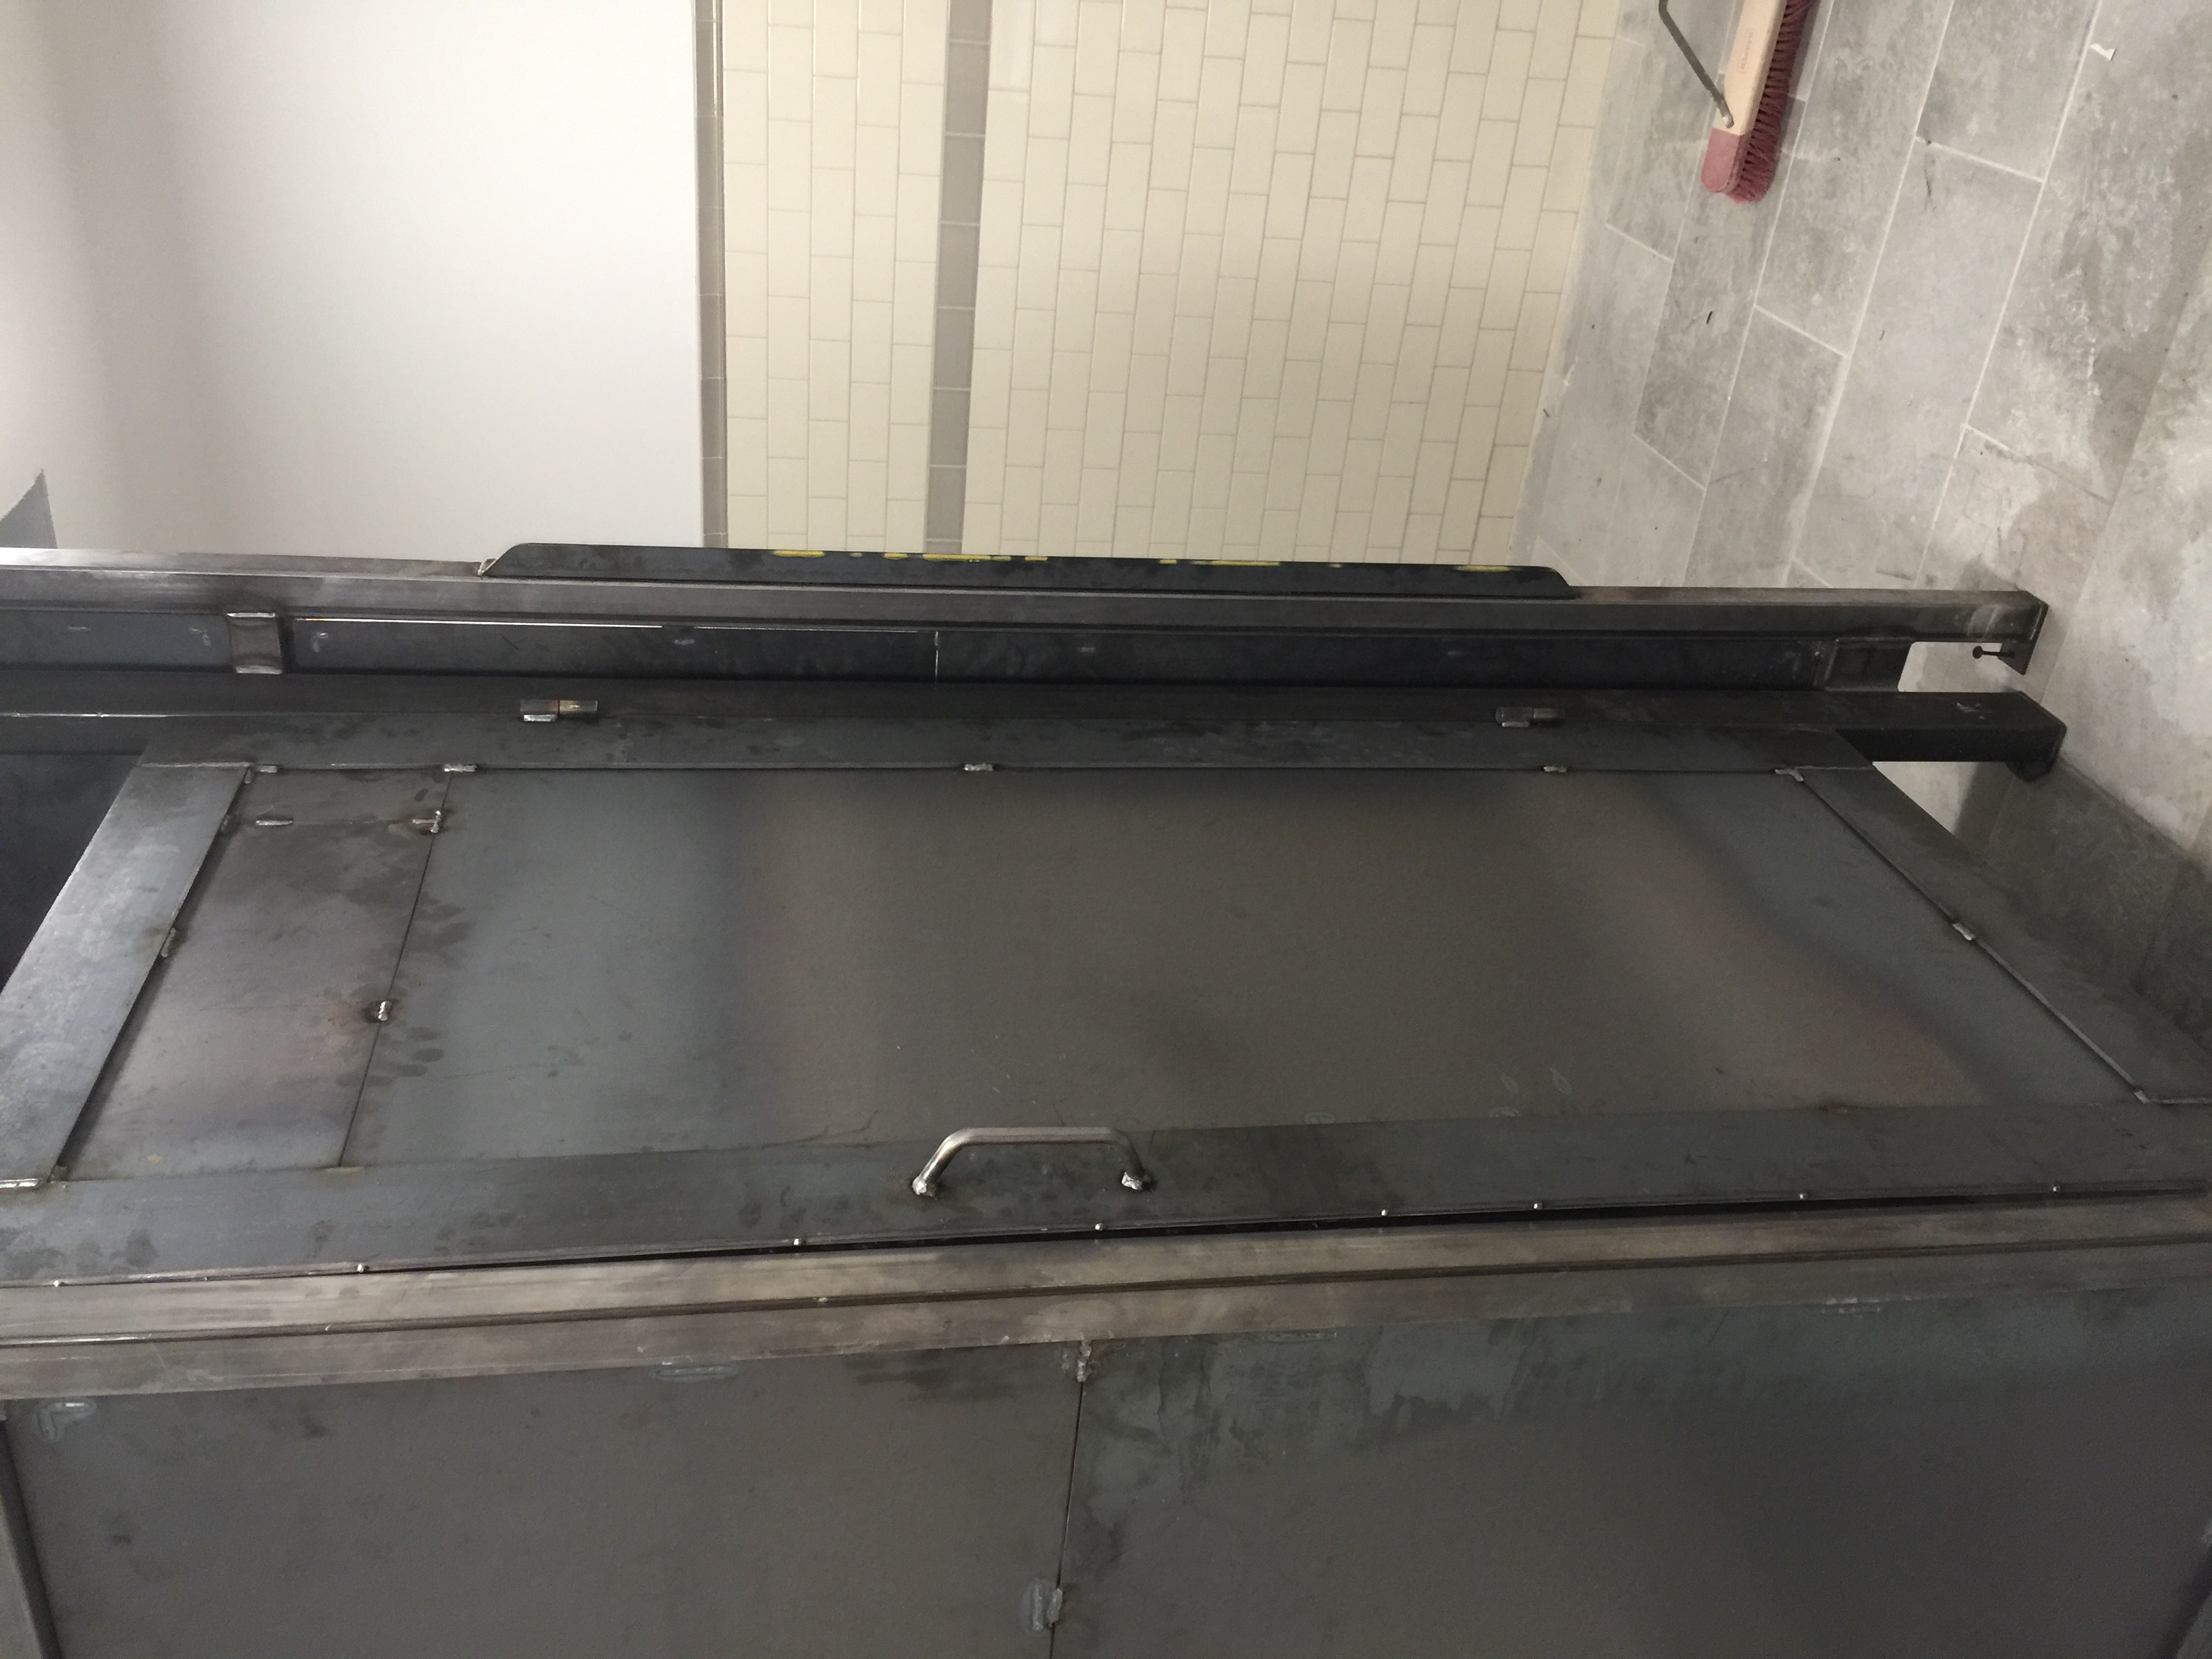 Steel Door for bathroom stall